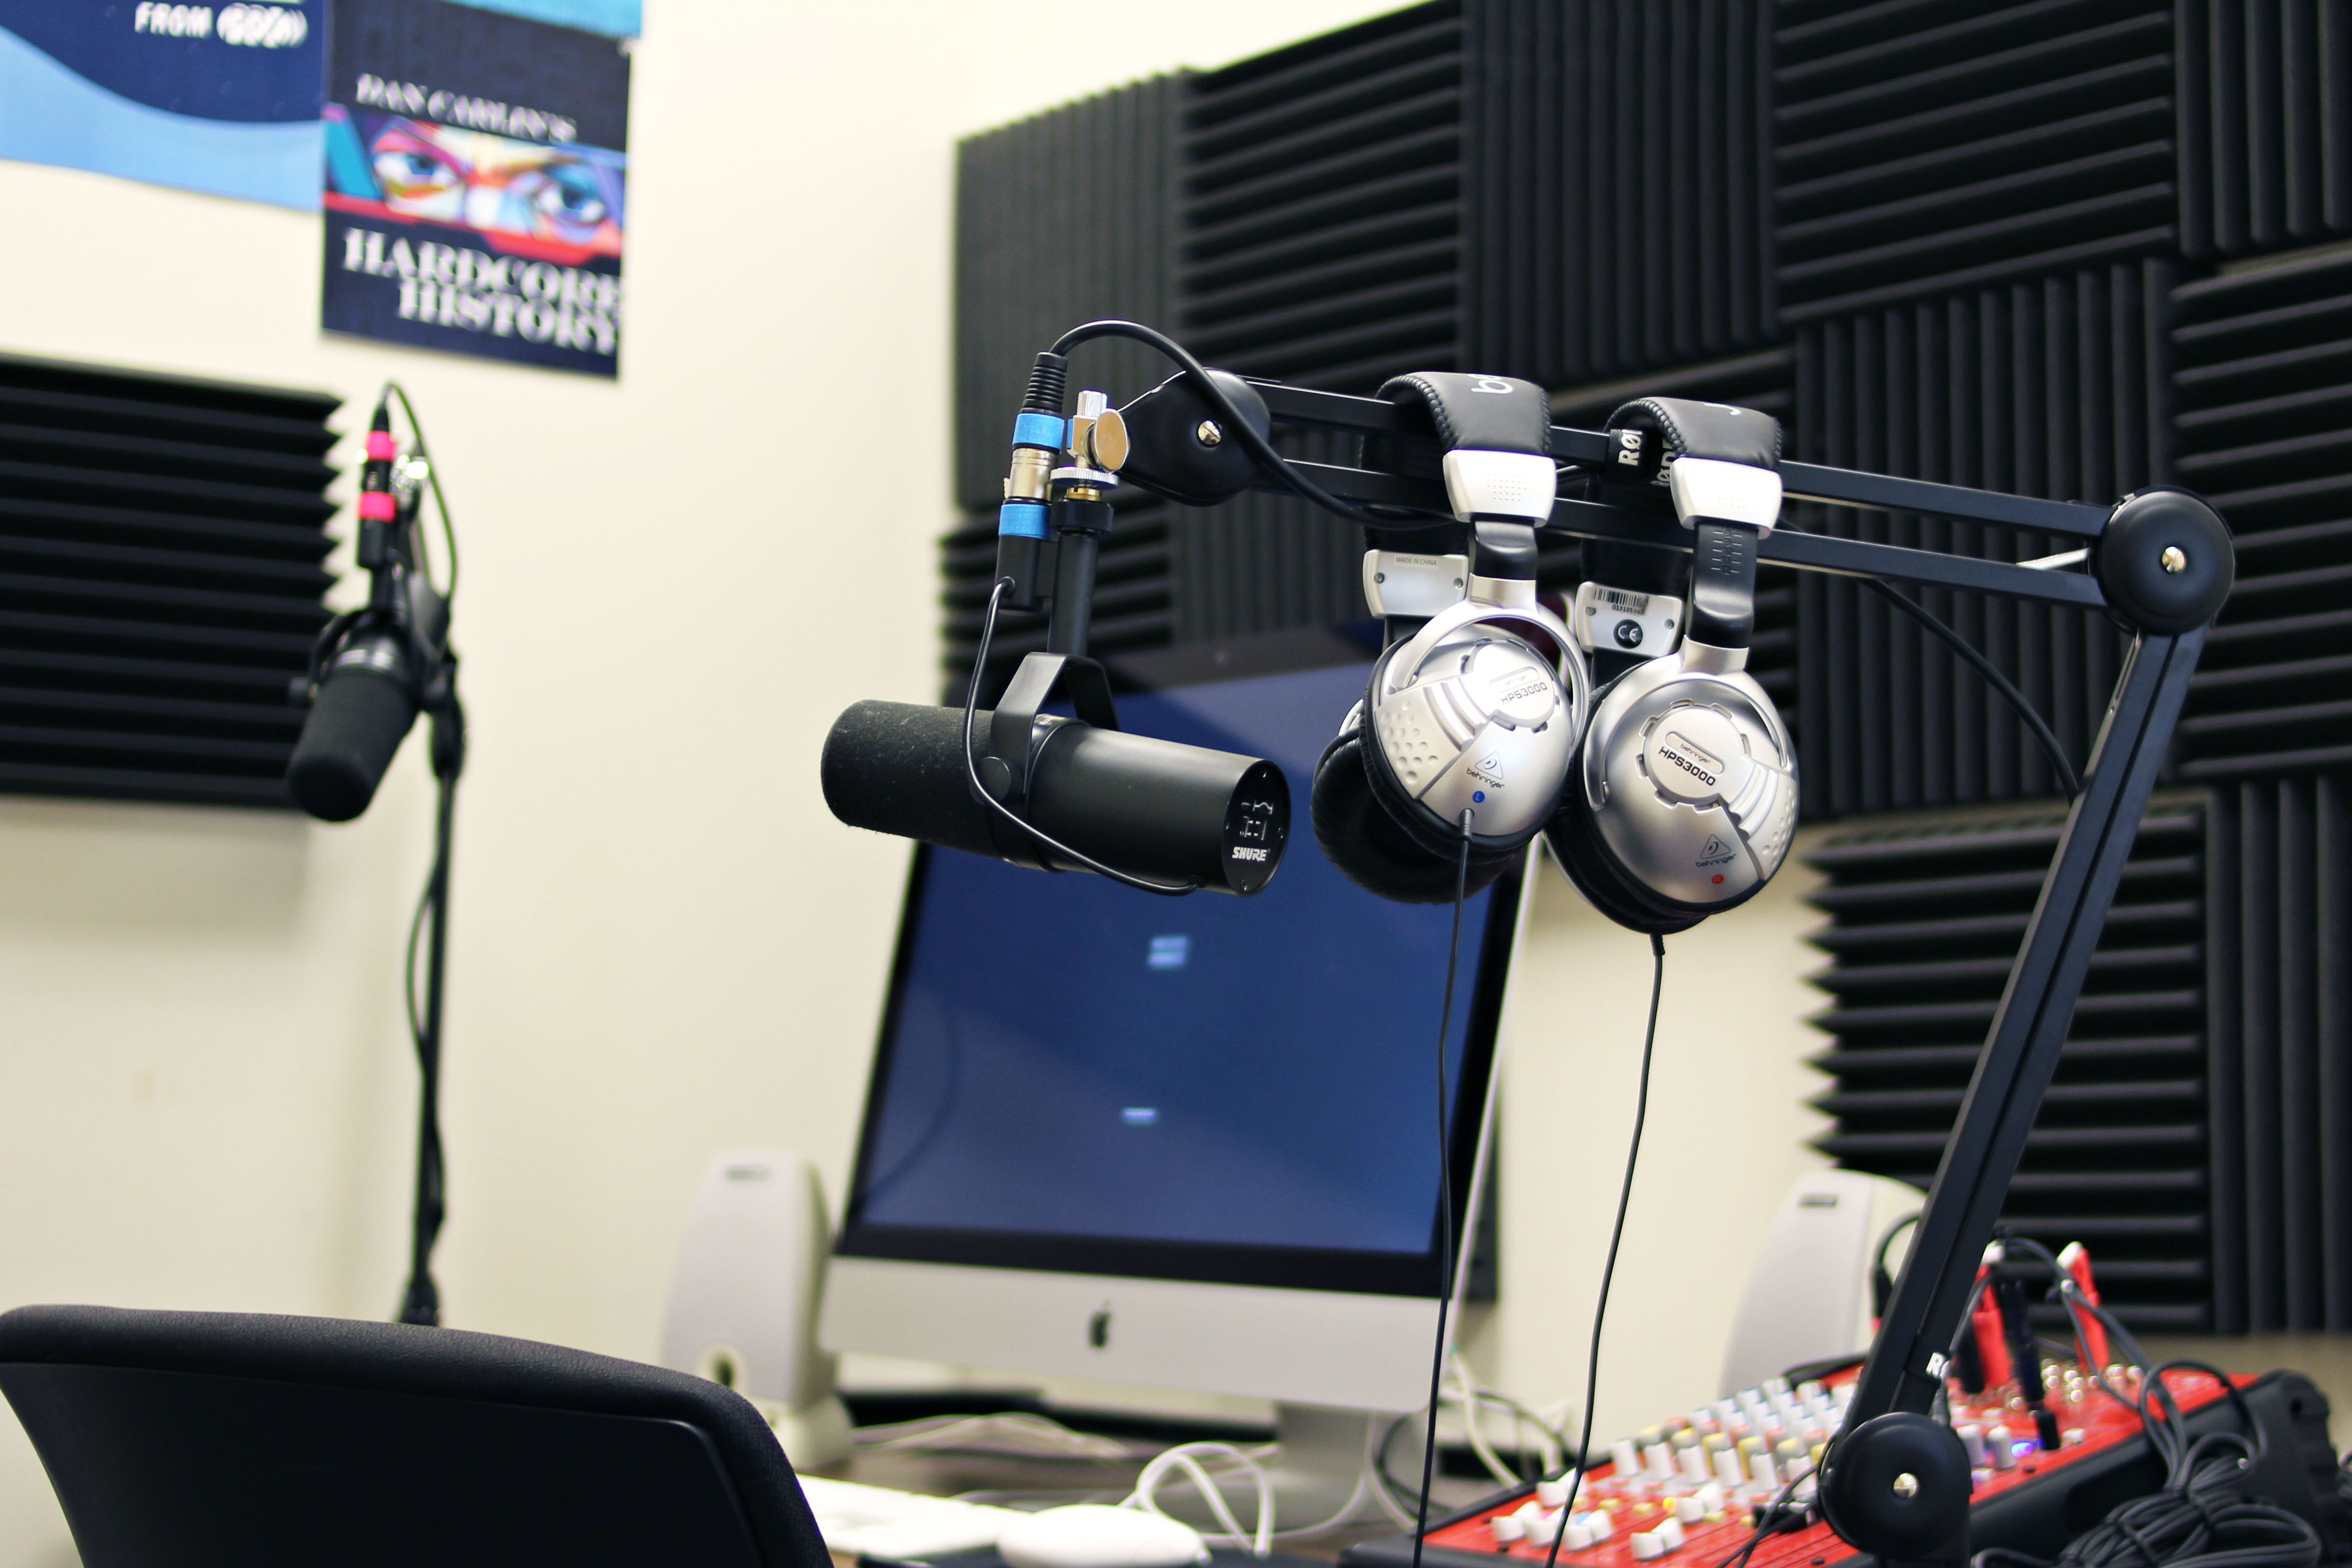 Starting podcasts allows Reynolds School students to tell unique stories and explore their passions